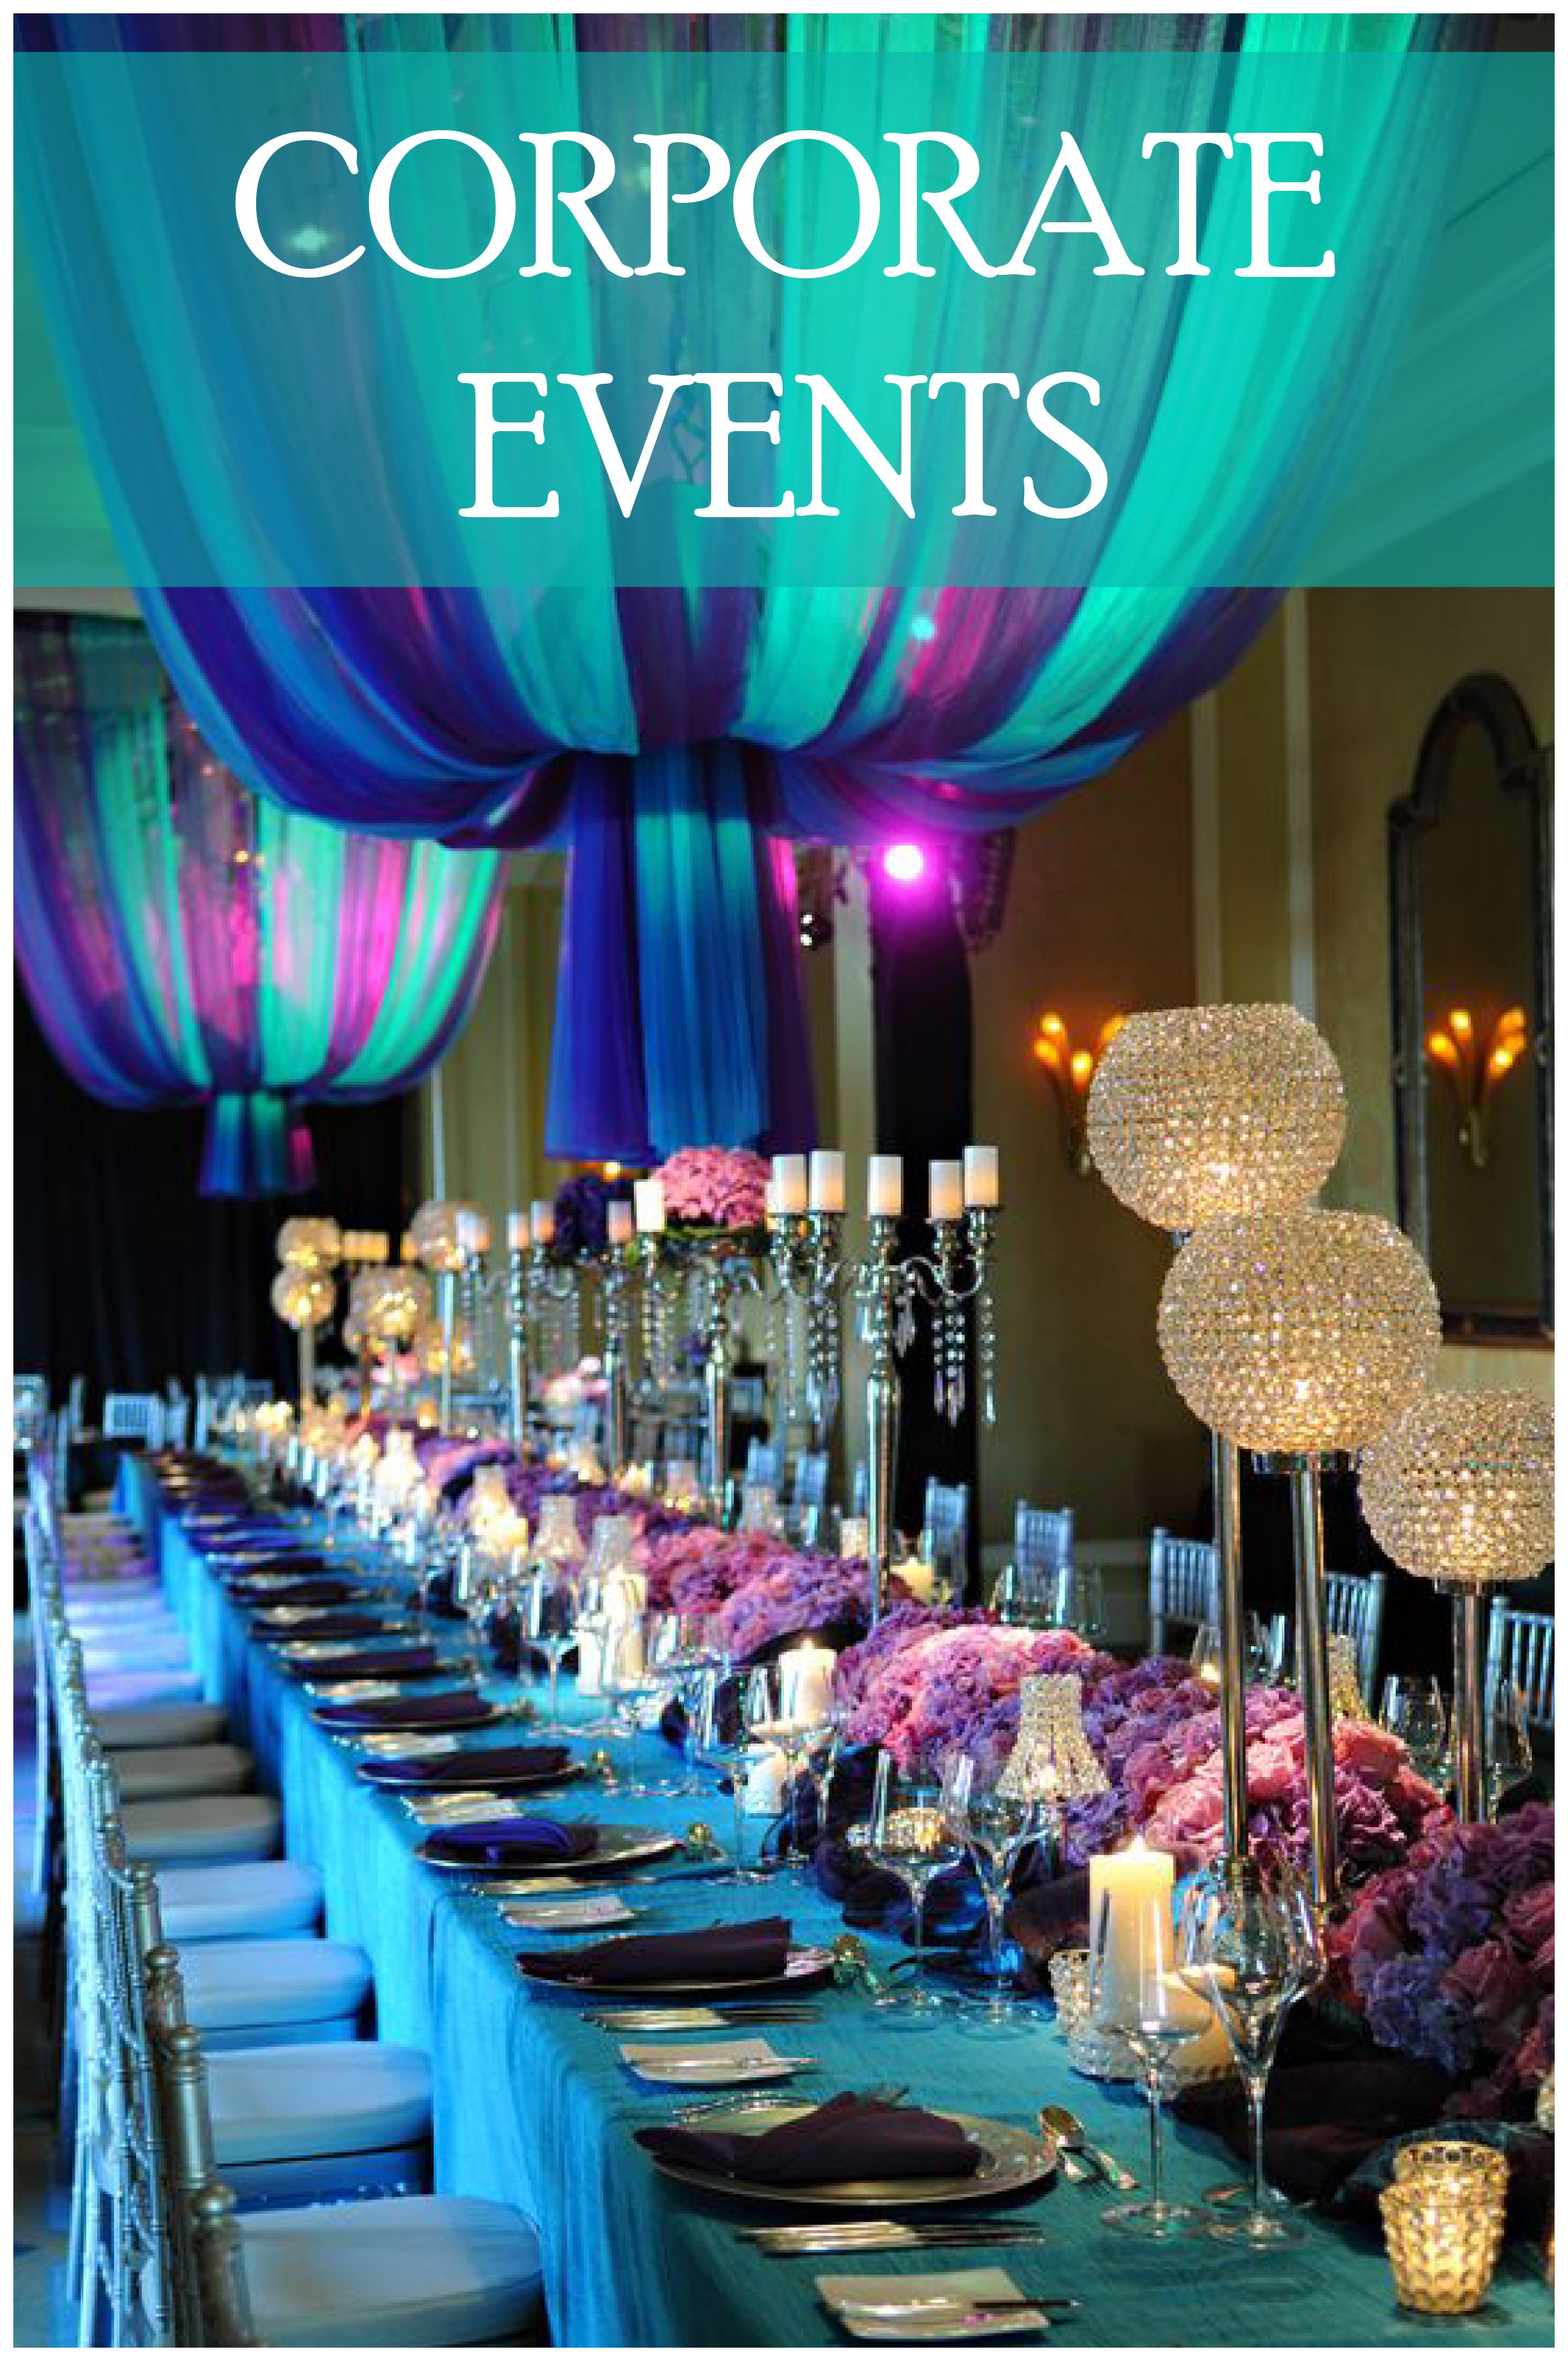 Corporate Event Design And Decor Ideas. Formal Dinner Setting, Beautiful  Centrepieces And Table Decorations For Events.